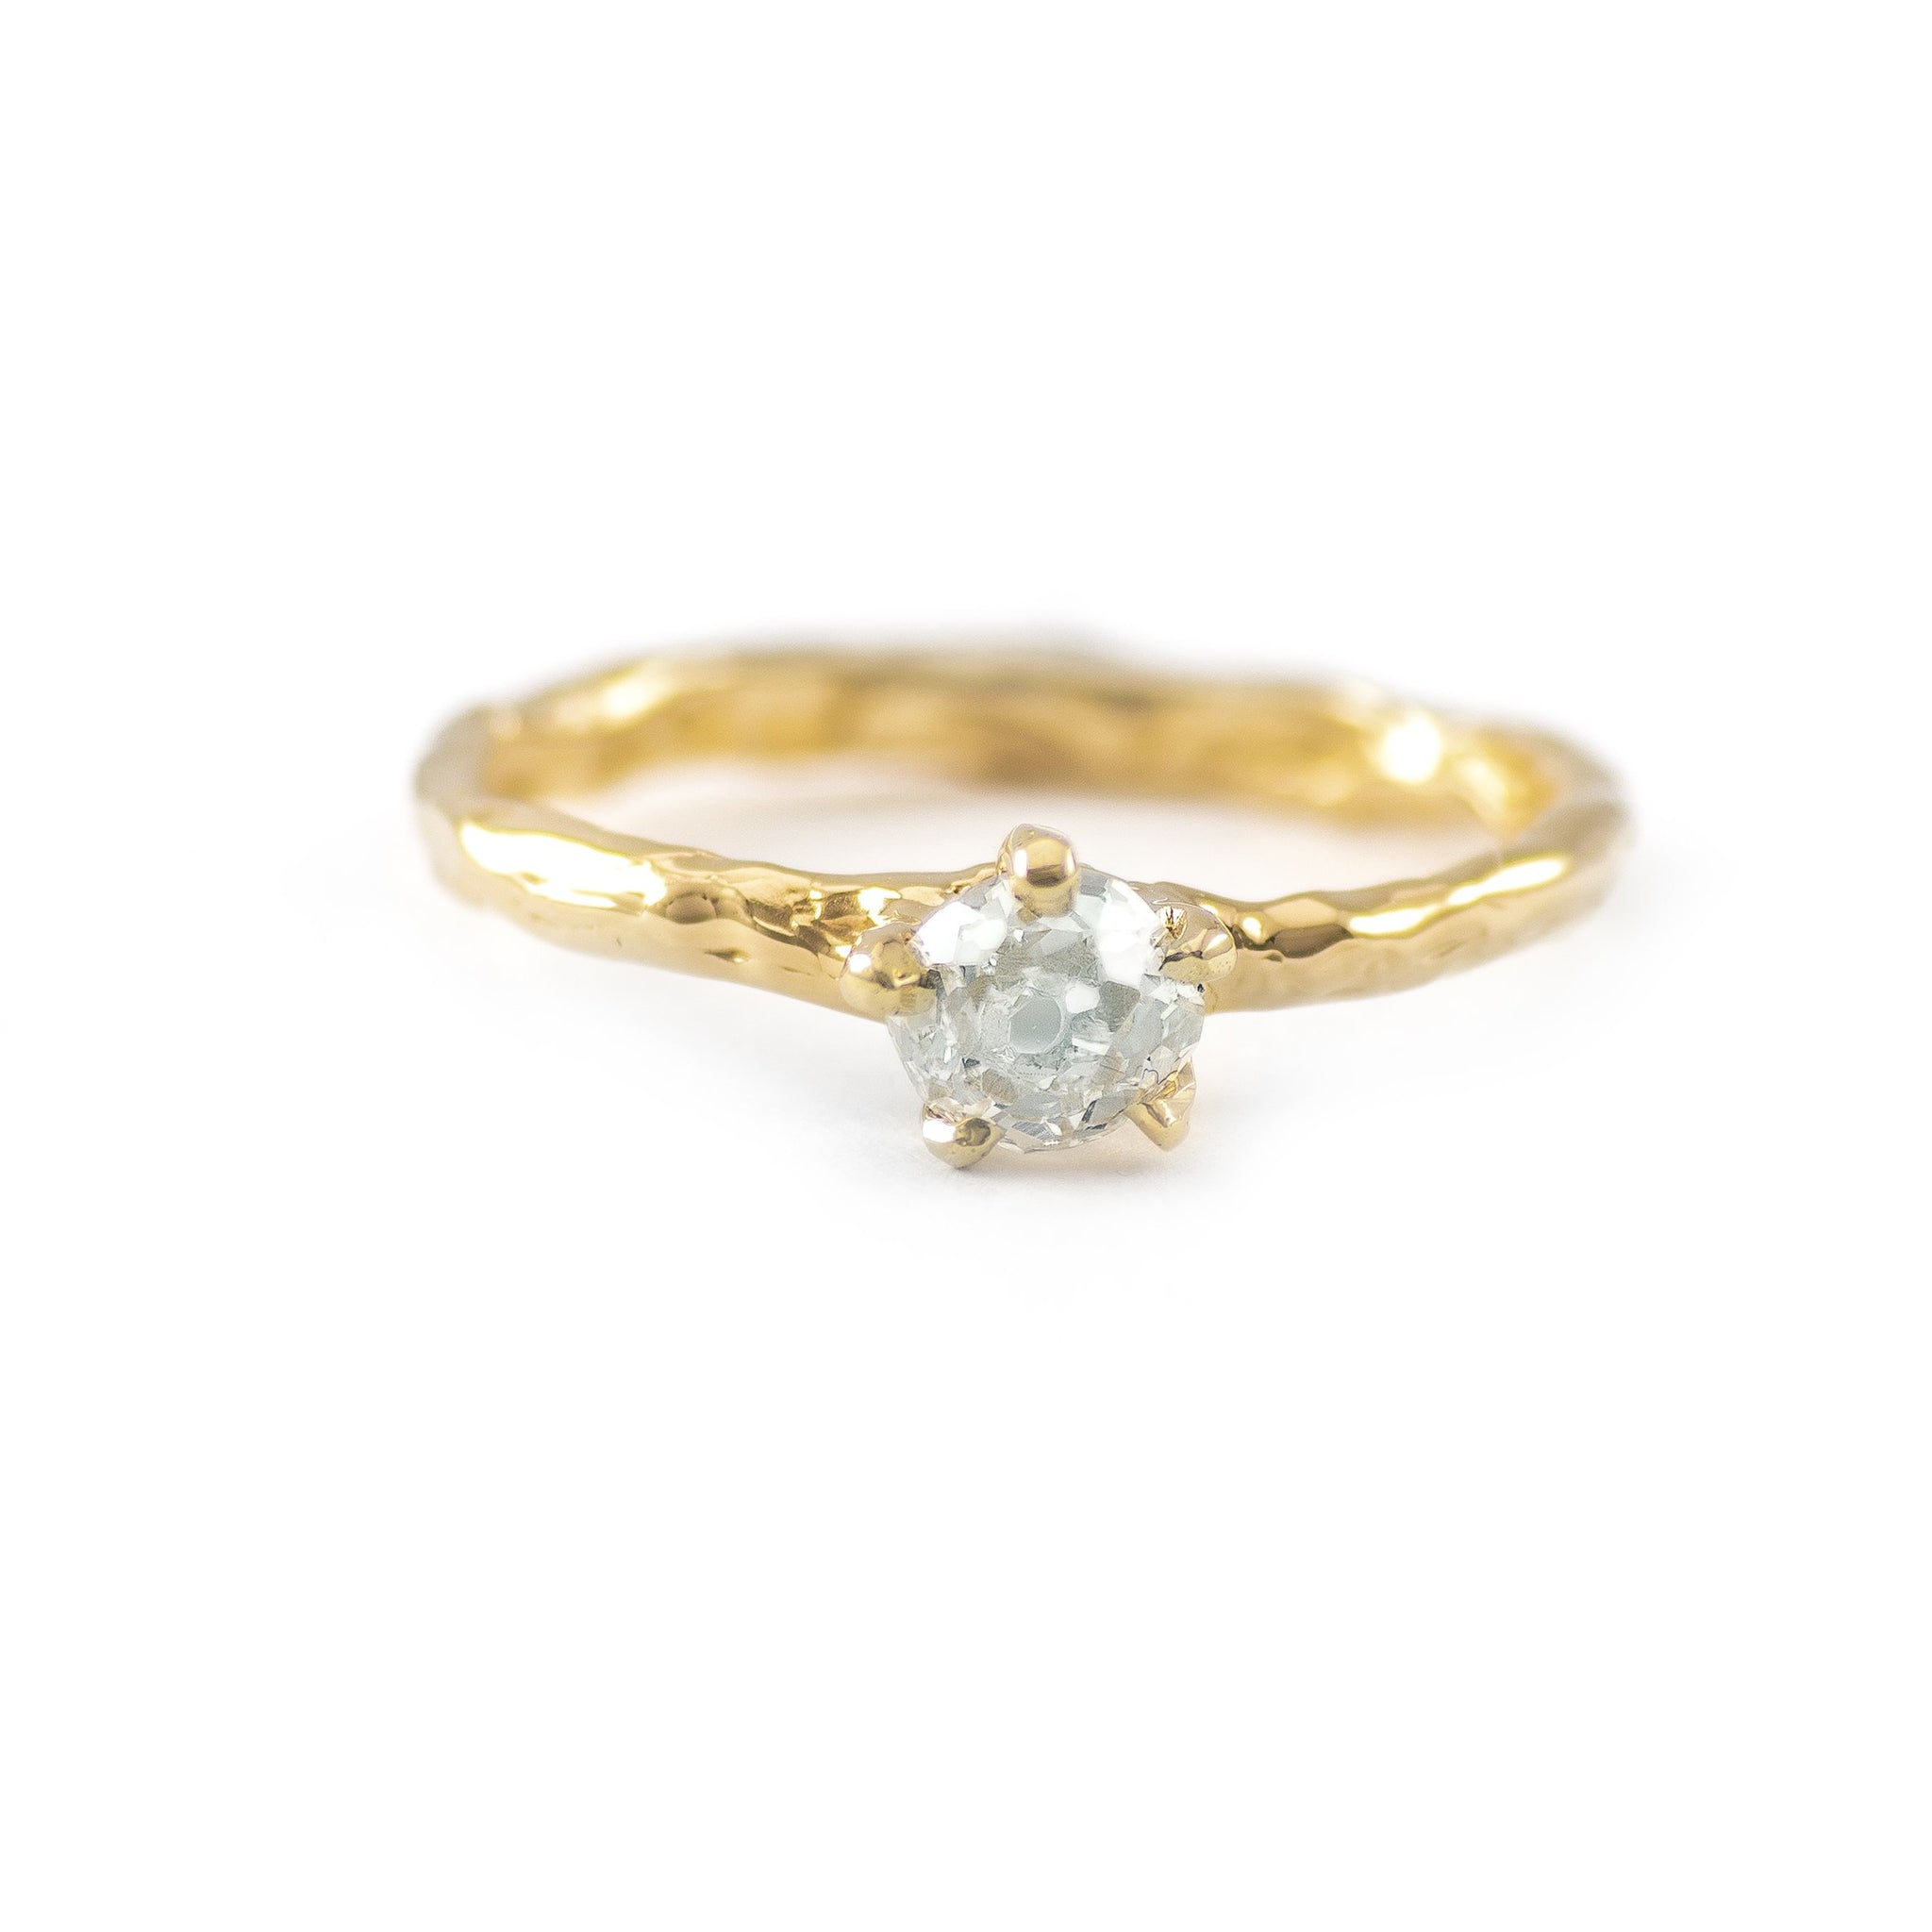 0.55 CT. One of a Kind Gold Prong Melt - Johanna Brierley Jewellery Design